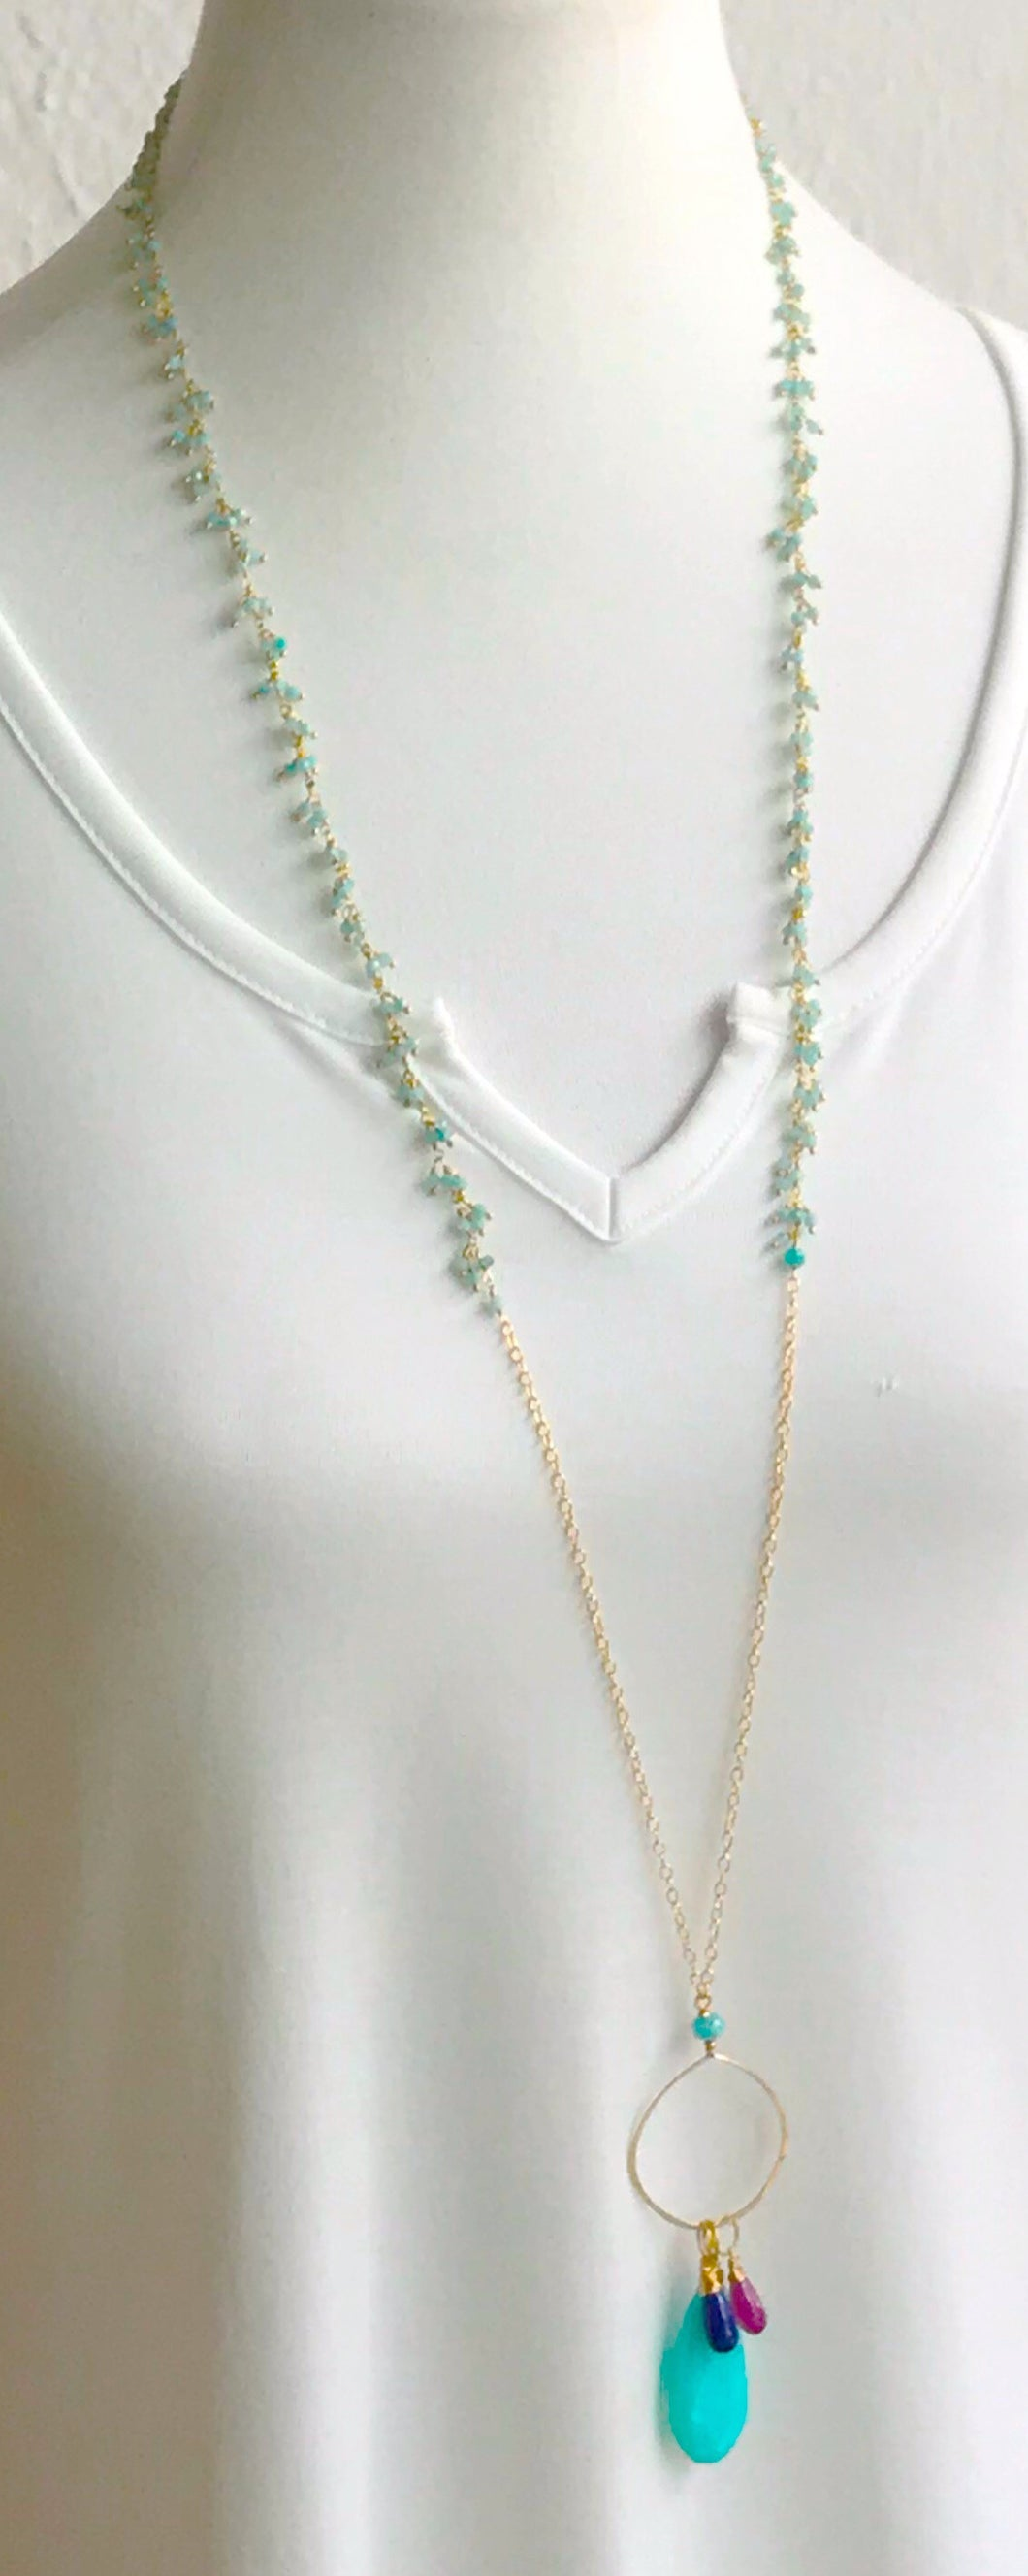 Maxi Necklace with Triple Stones